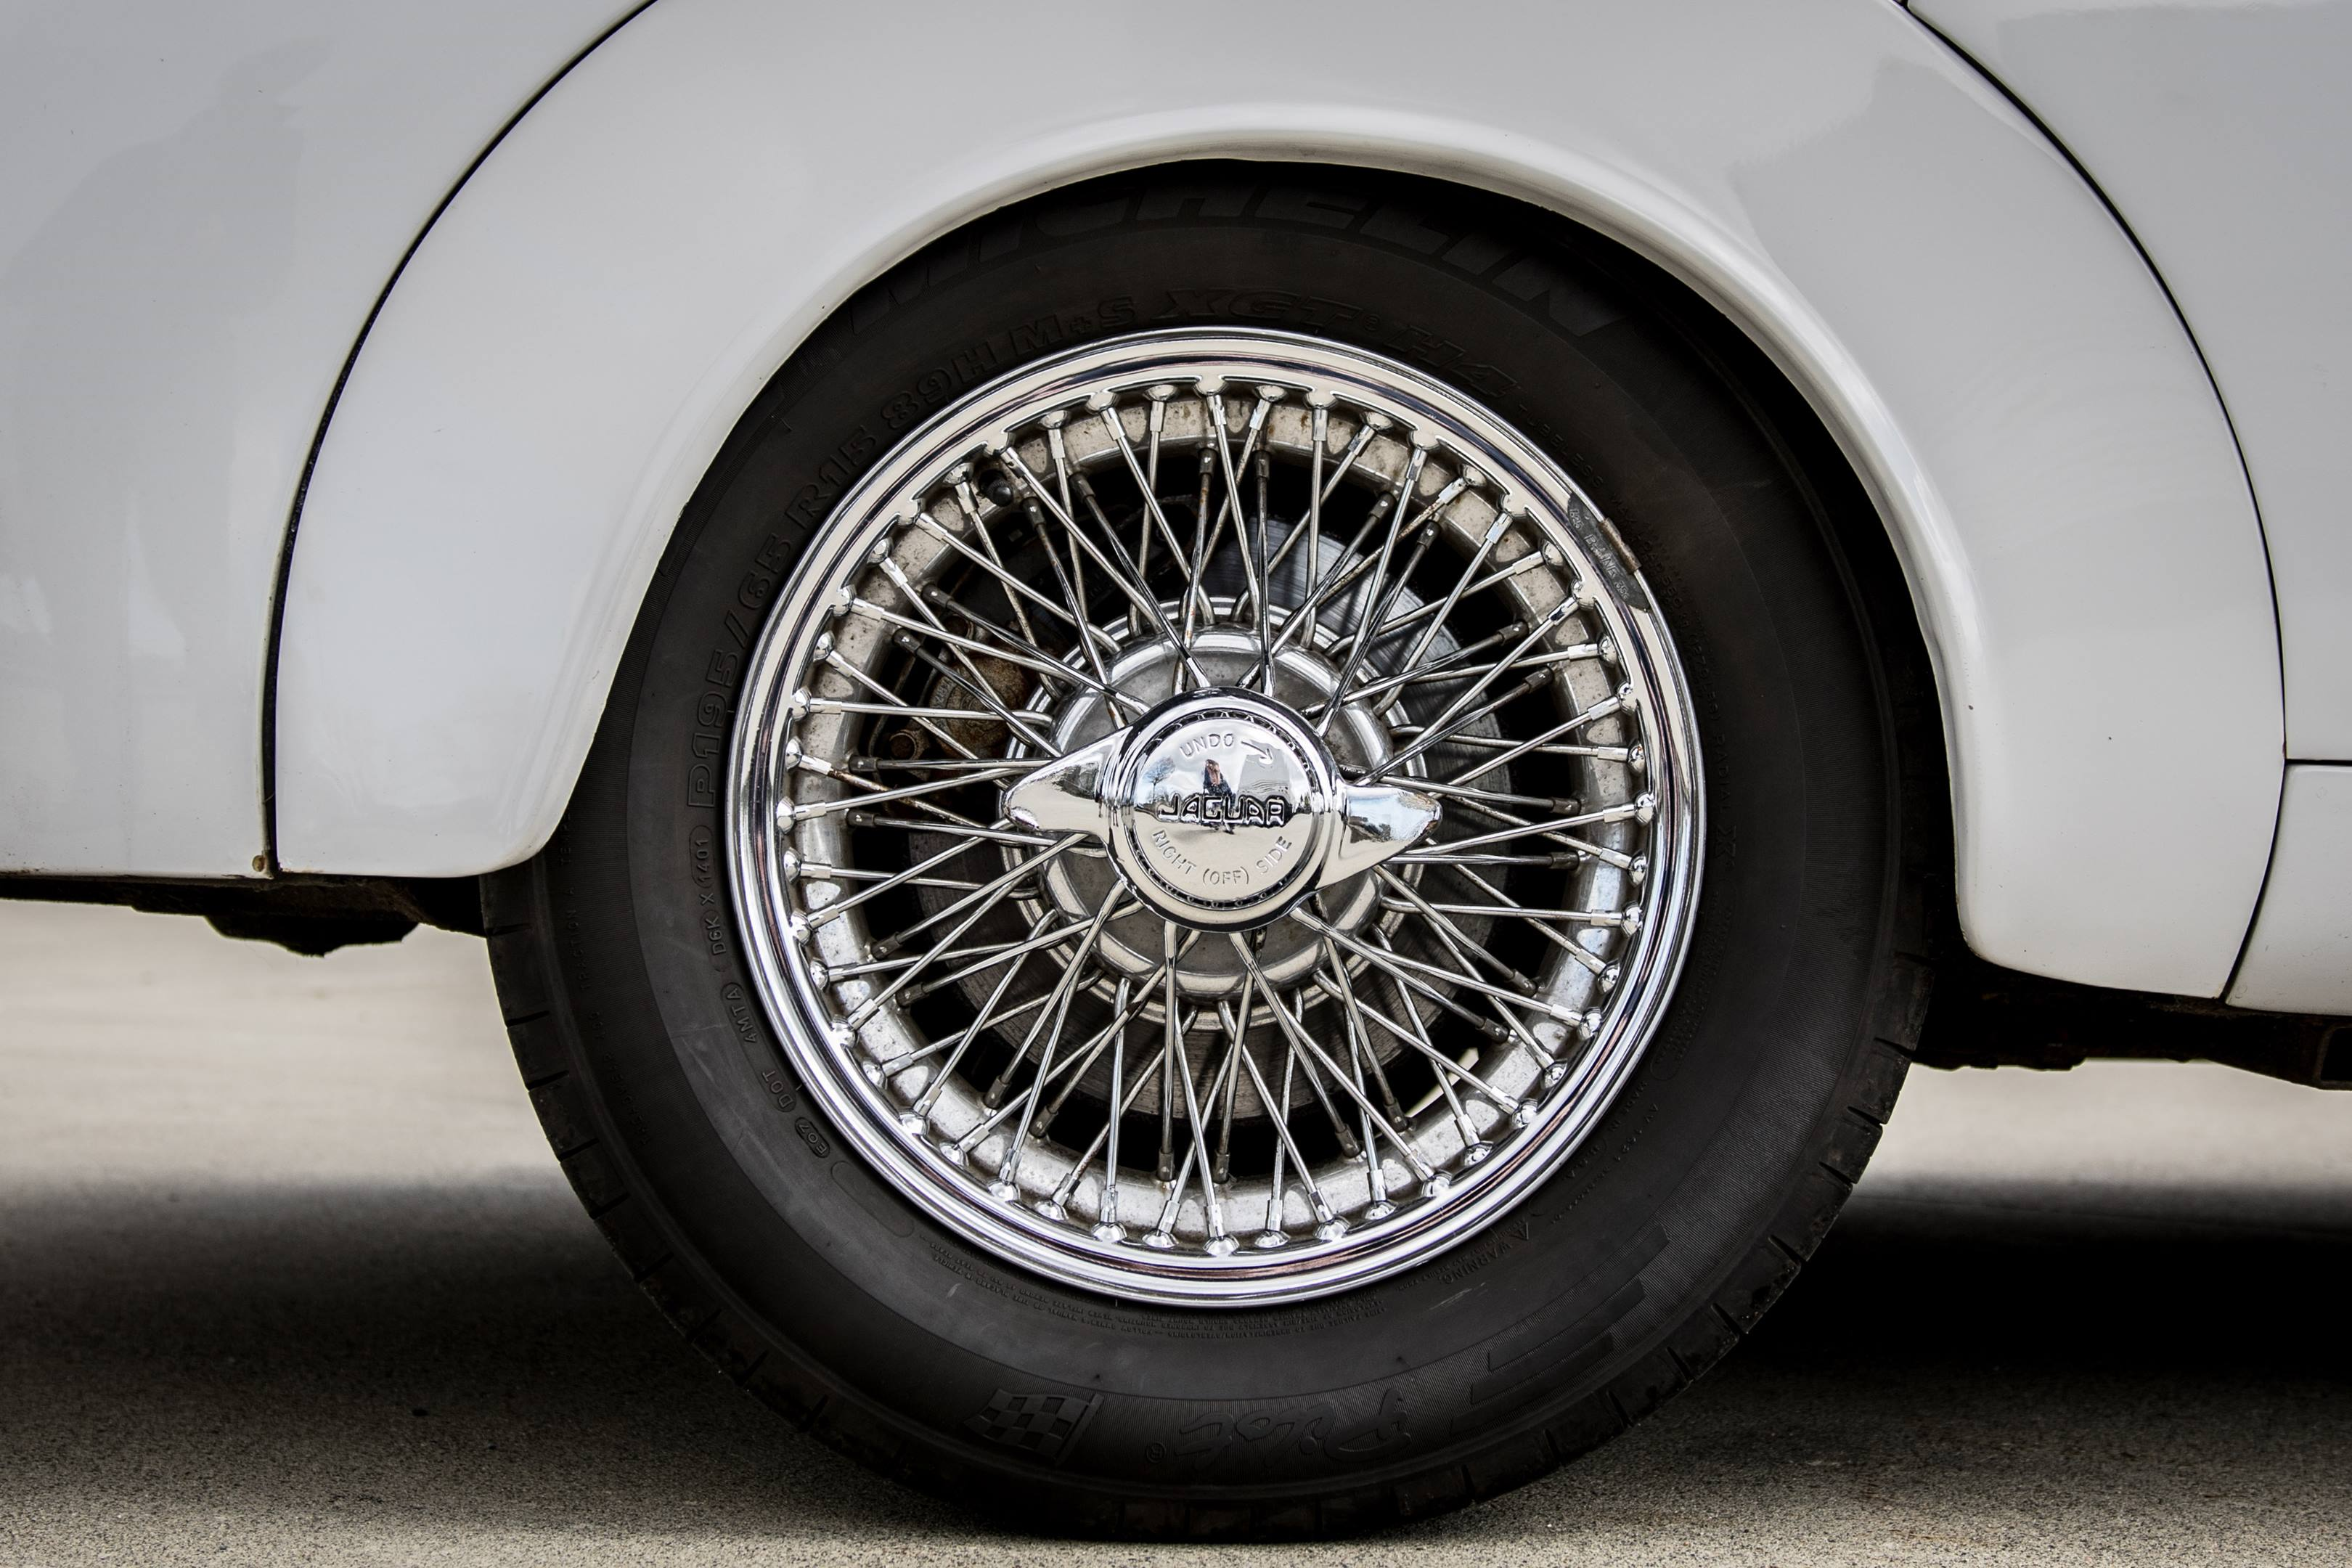 Jaguar Mark II wheel